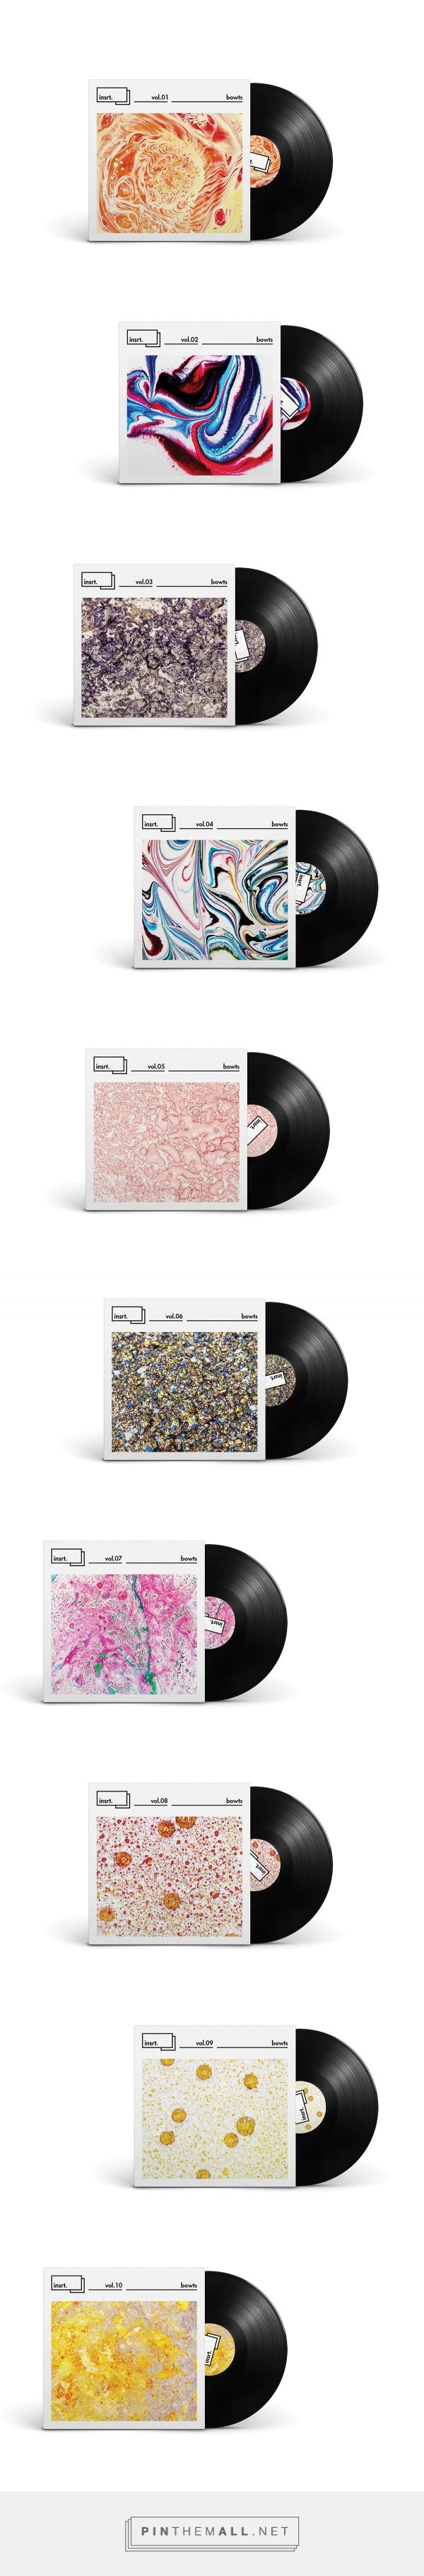 INSRT. on Branding Served curated by Packaging Diva PD. Album cover packaging patterns that are sure to inspire you. I LIKE THE WAY THESE ALBUM COVERS USE VISUALLY INTERESTING PATTERS TO DRAW ATTENTION